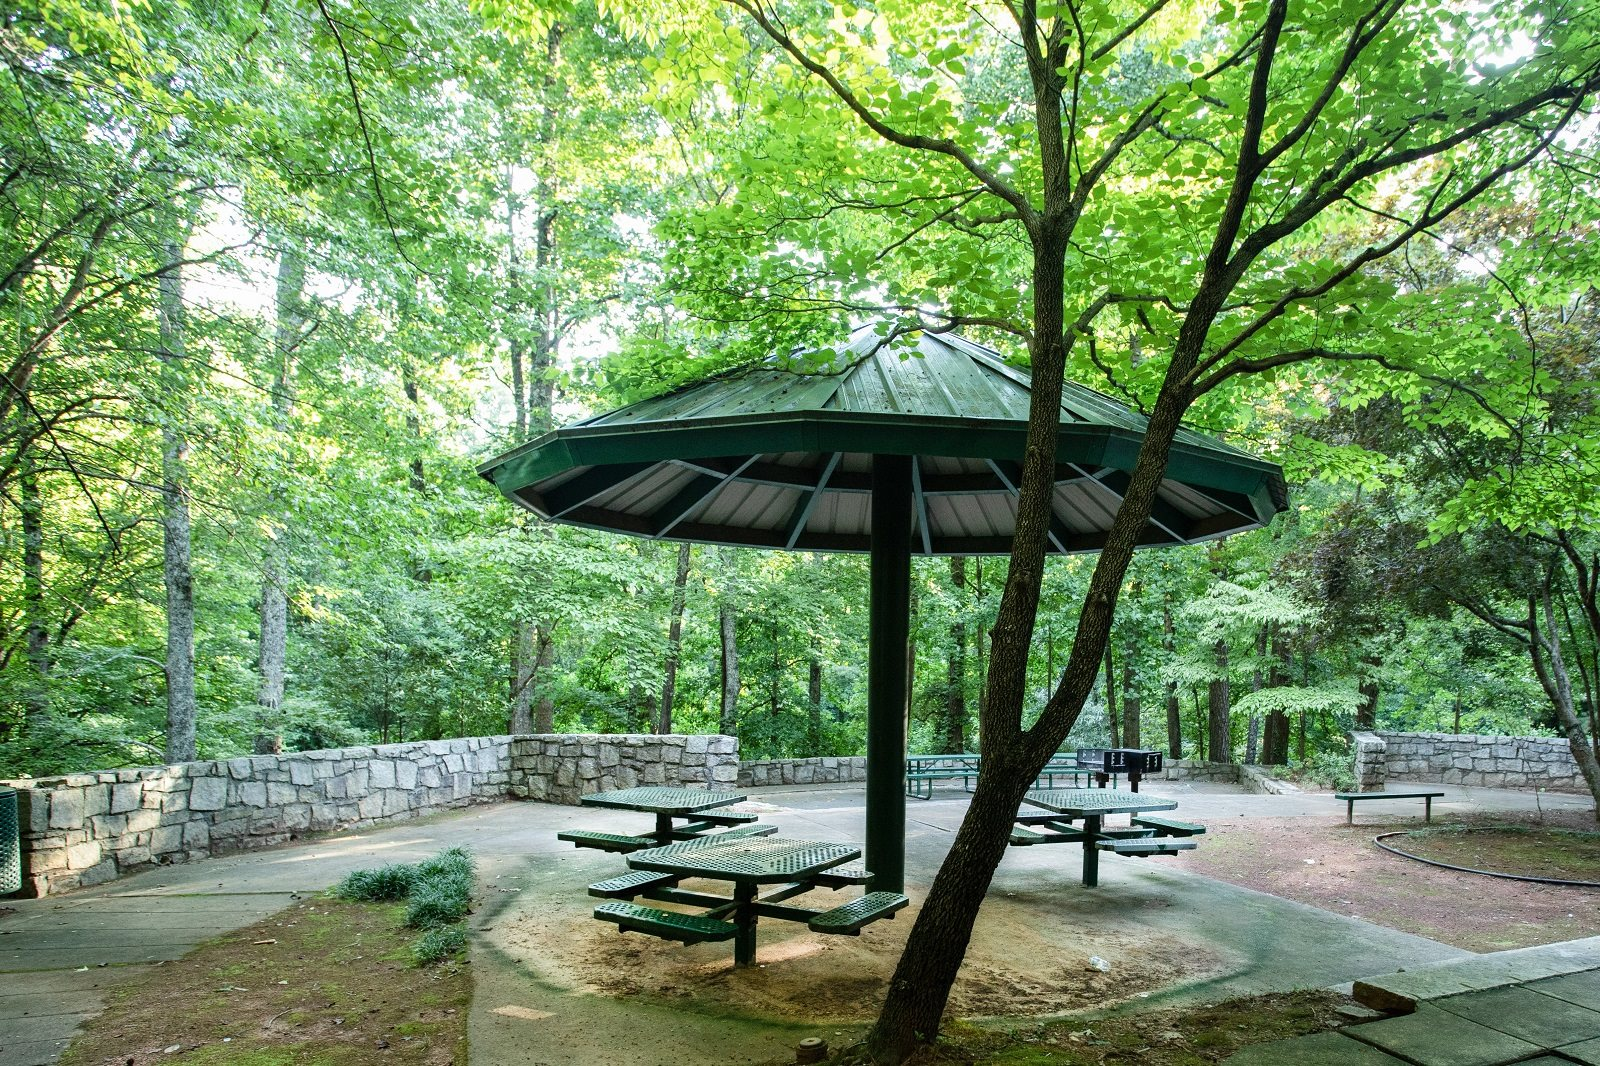 BBQ at Murphy Candler Park near Windsor at Glenridge, 5610 Glenridge Drive, Sandy Springs